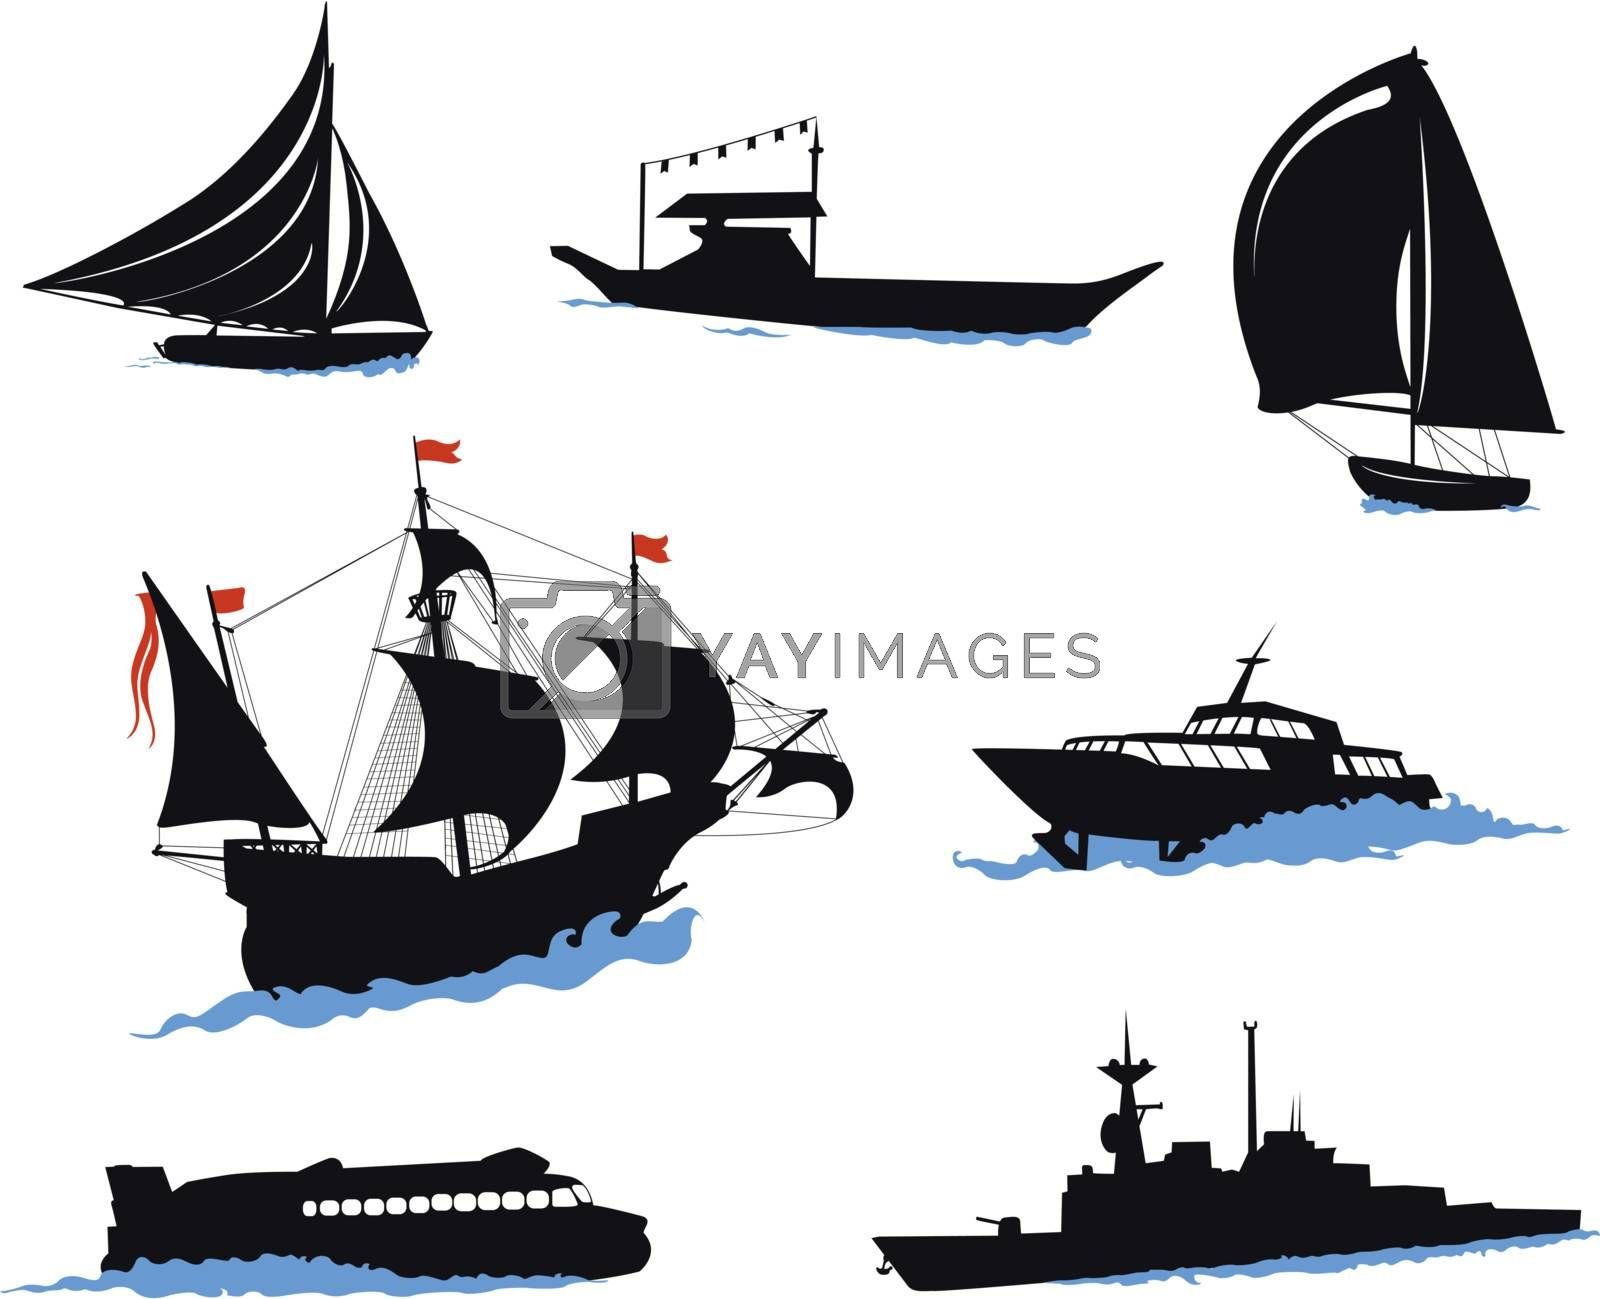 Silhouettes of offshore ships - yacht, fishing boat, the warship.